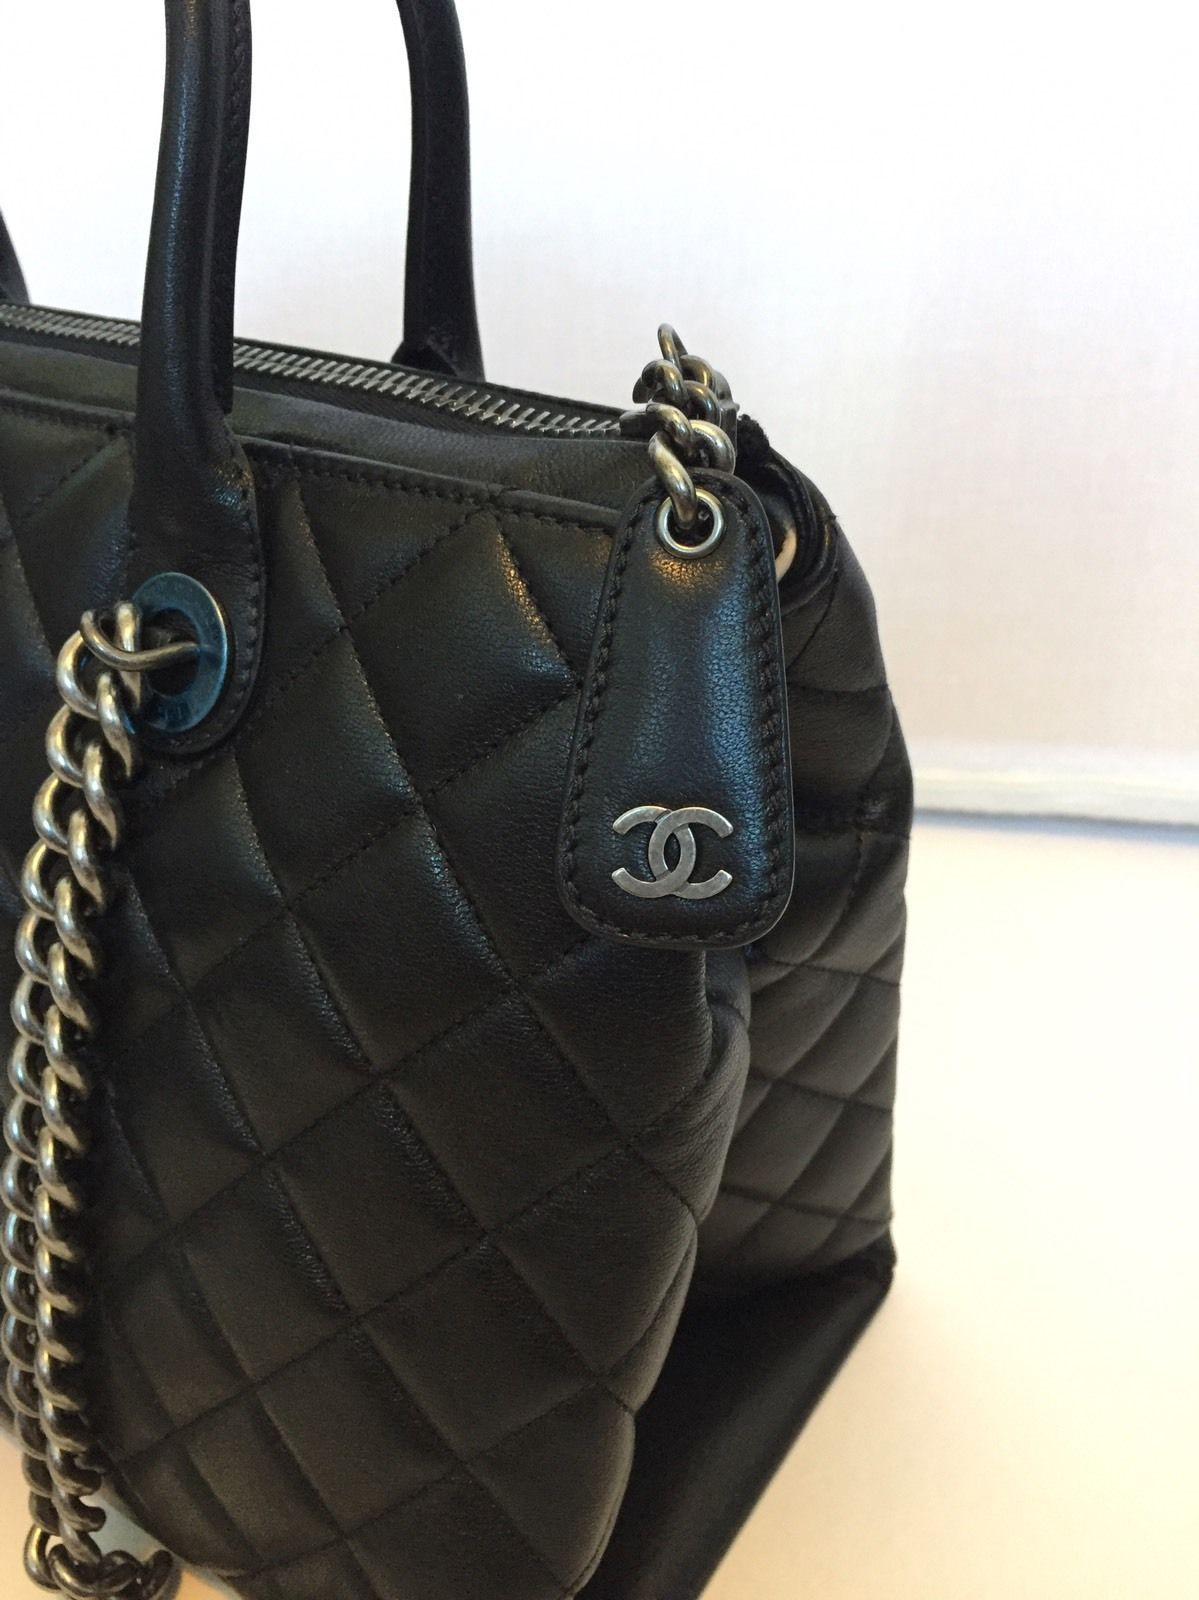 Chanel Calfskin Leather Tote Work Bag Black In 2019